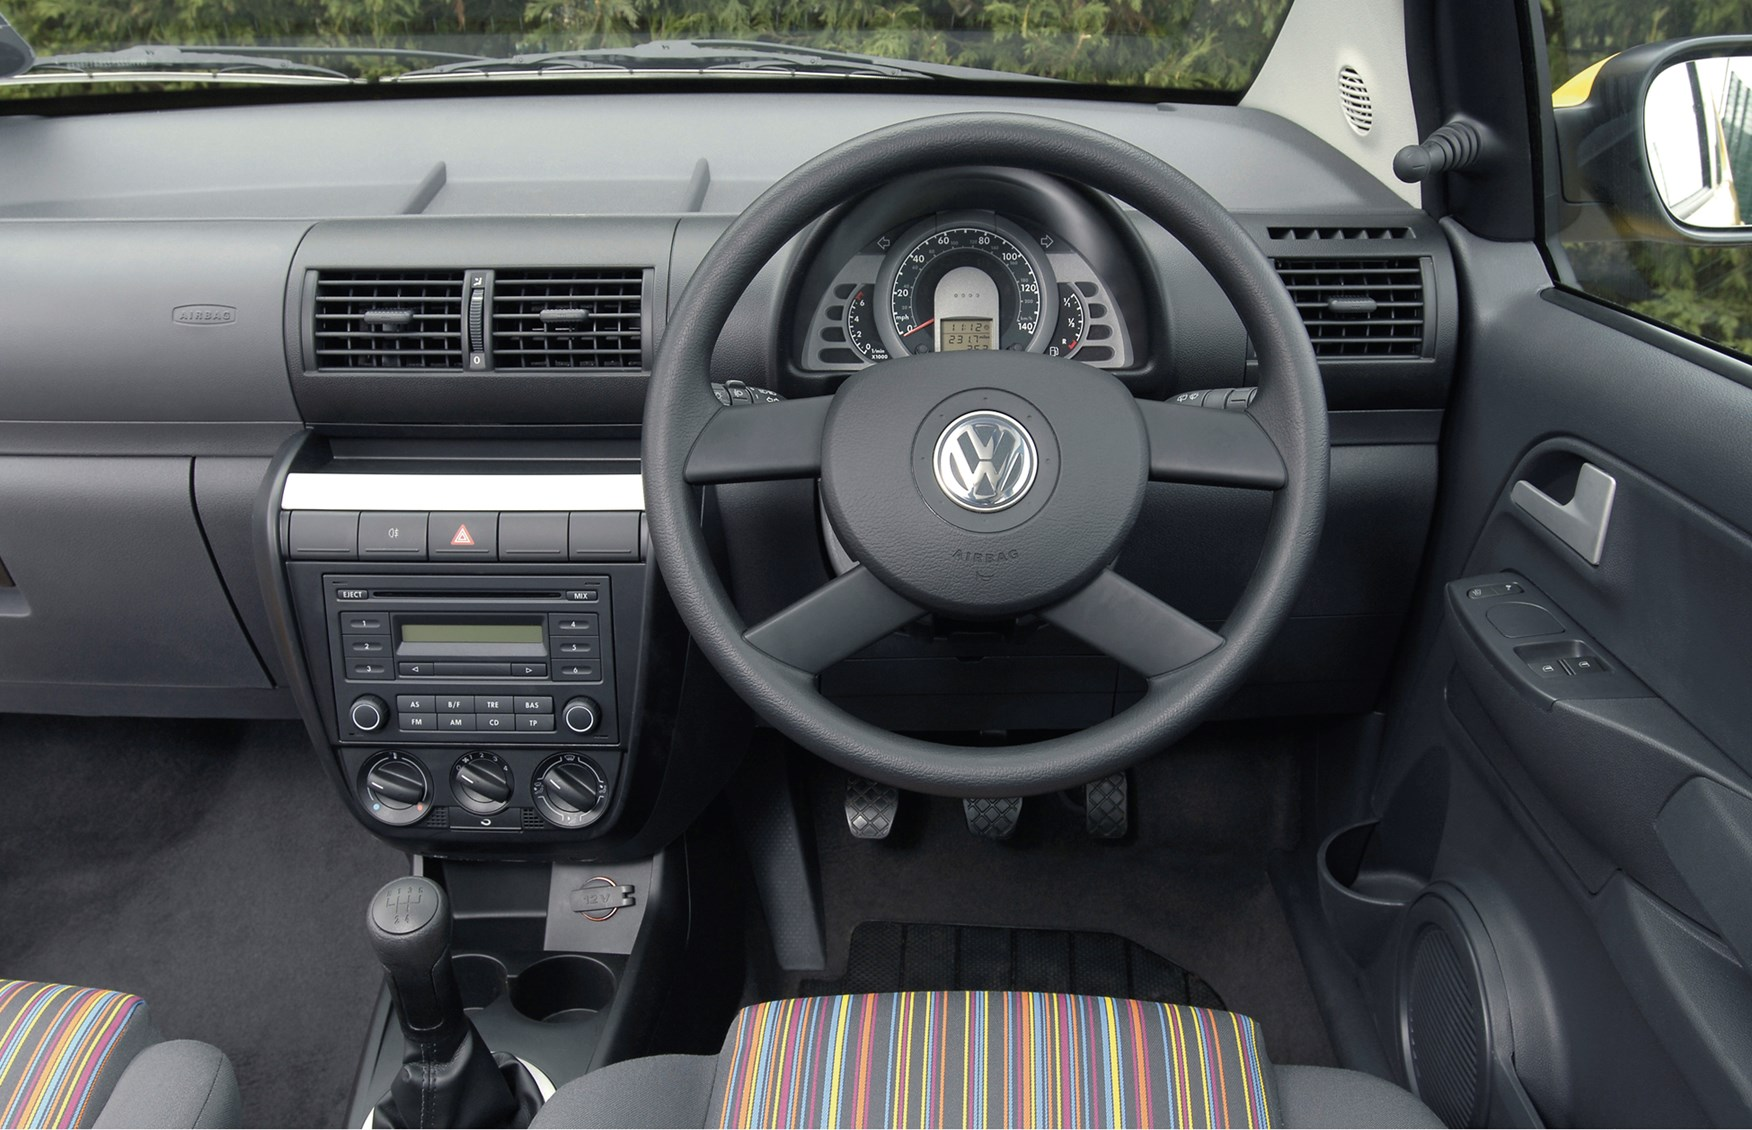 Volkswagen Fox Hatchback Review (2006 - 2012)